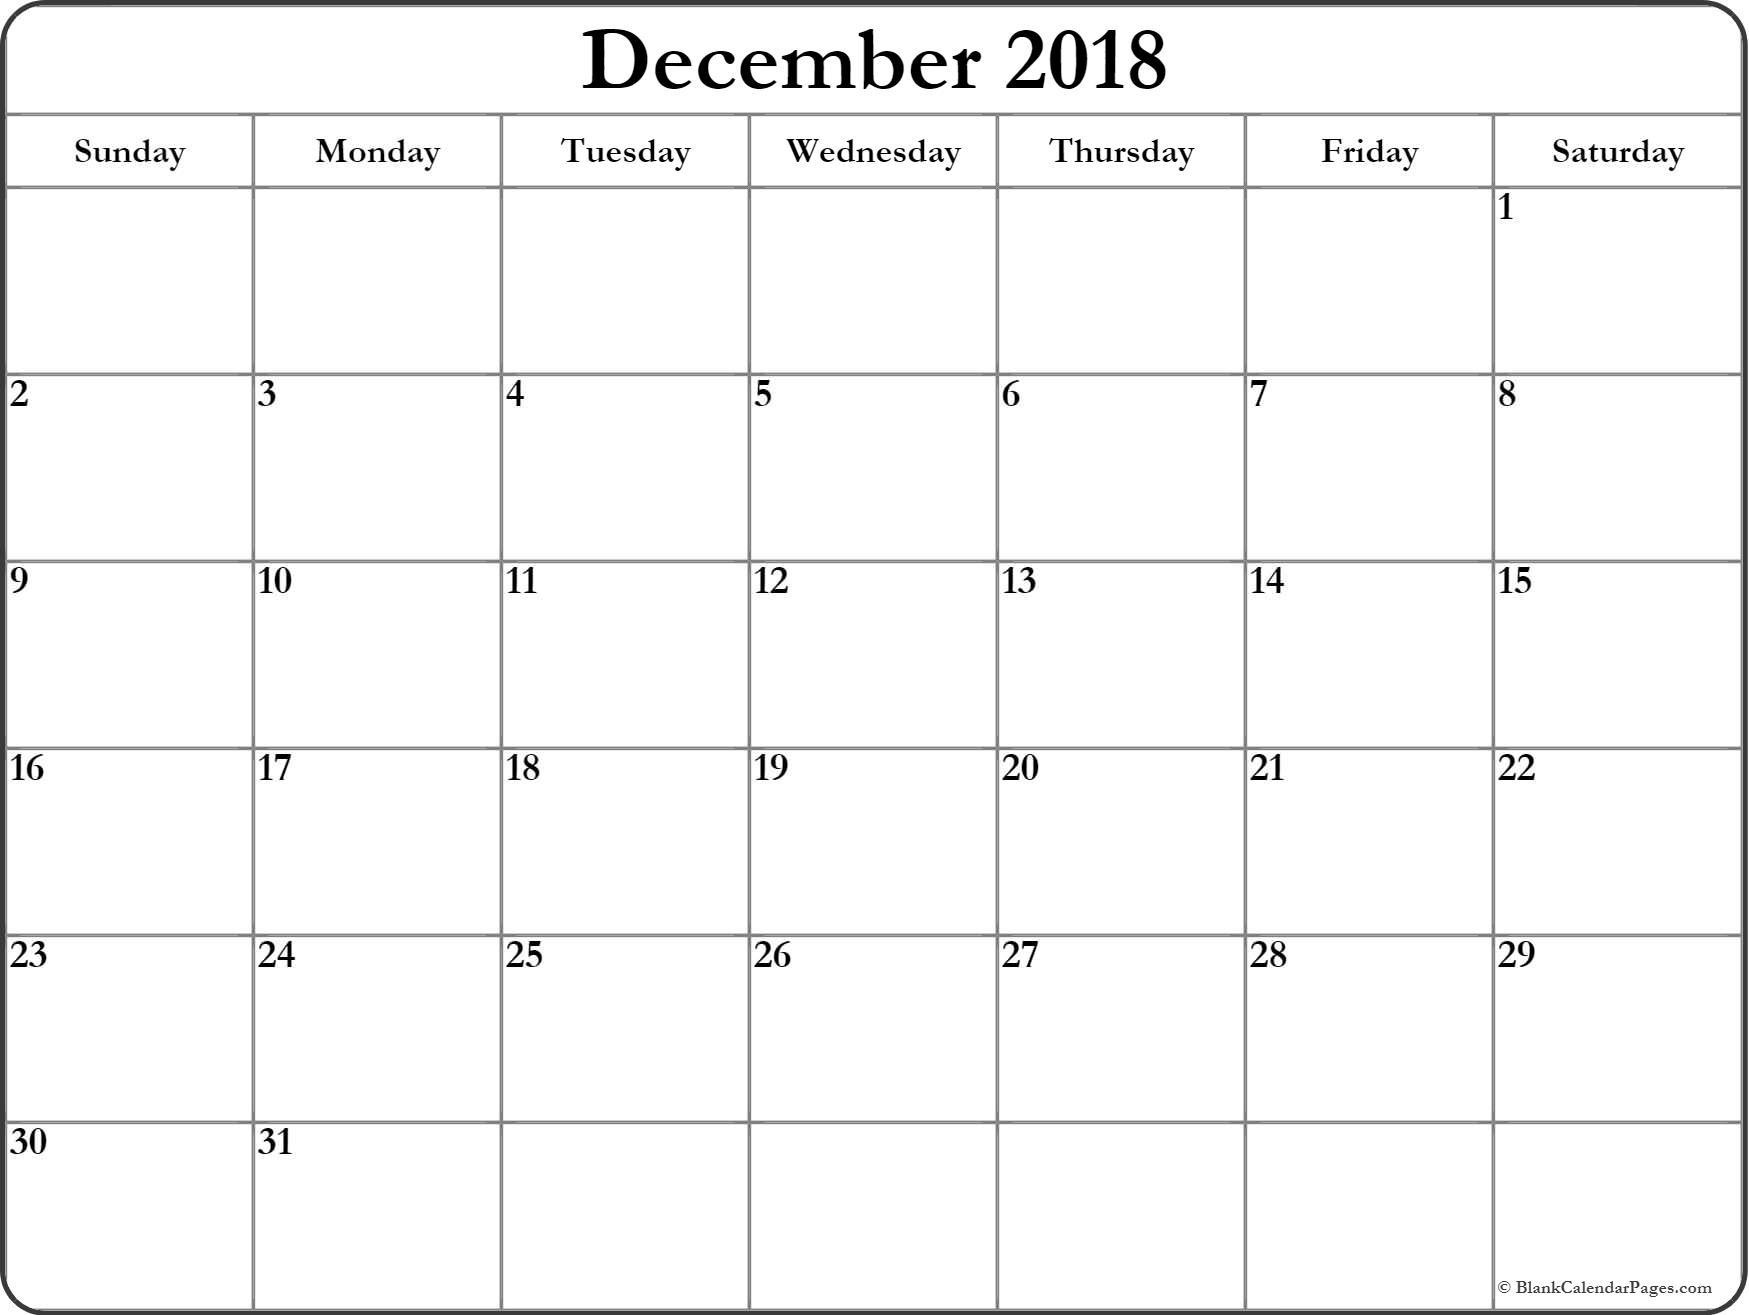 Best} Free* Blank December 2018 Calendar Templates Printable With Notes in Blank Calendar Page December